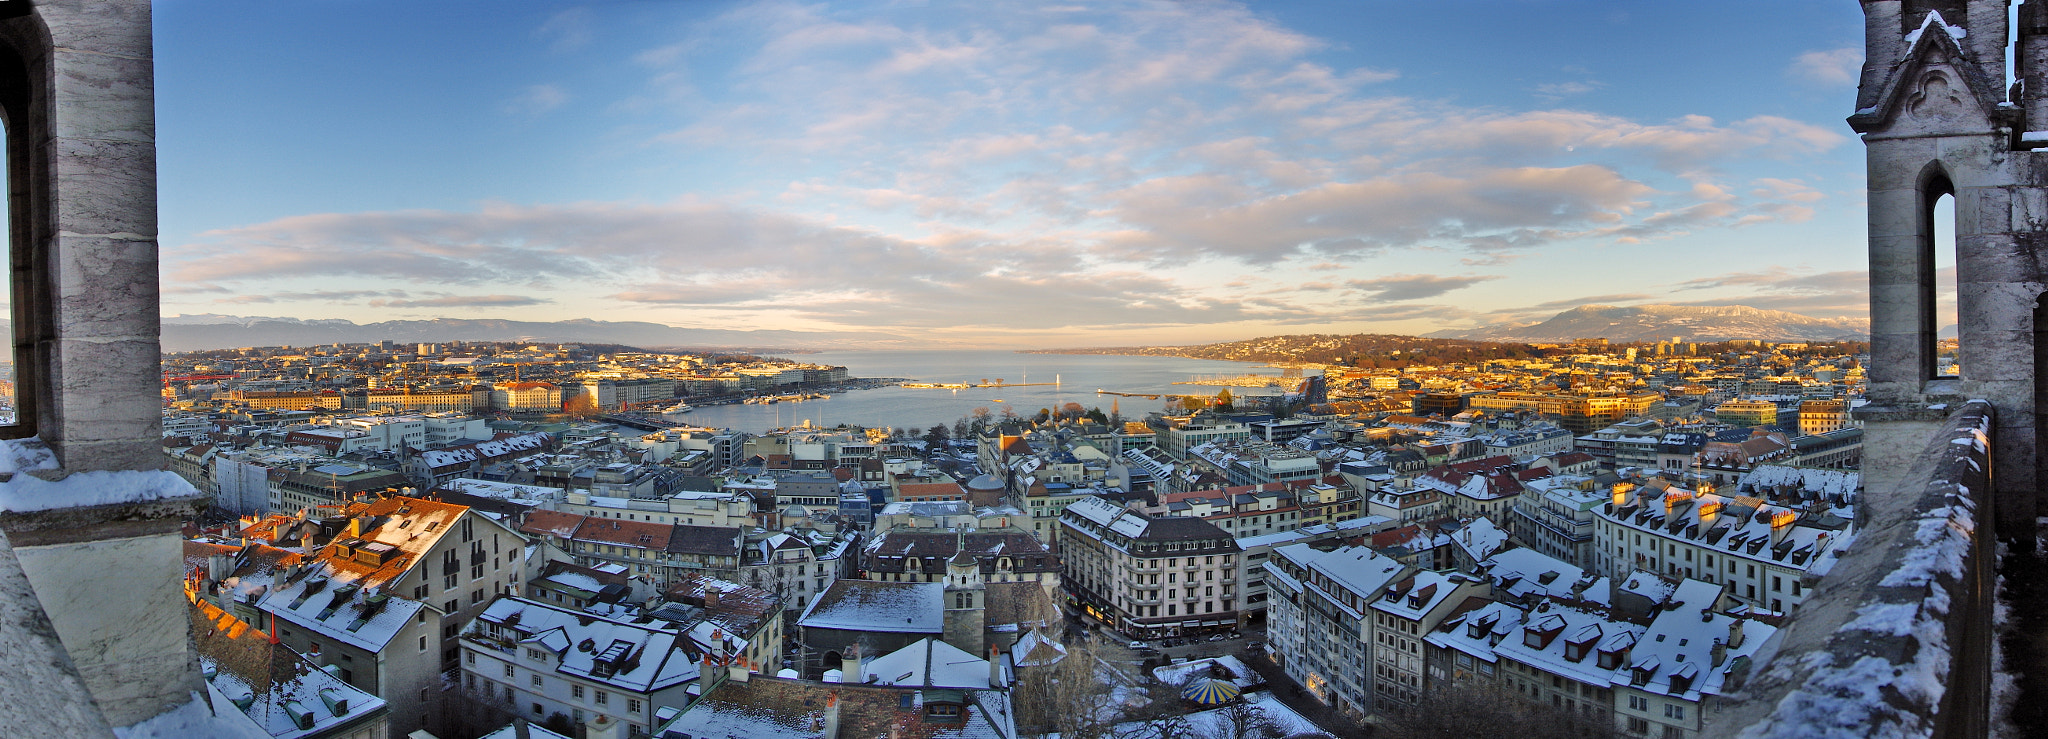 Photograph Panorama of Geneva by Bogdan's travel clicks on 500px